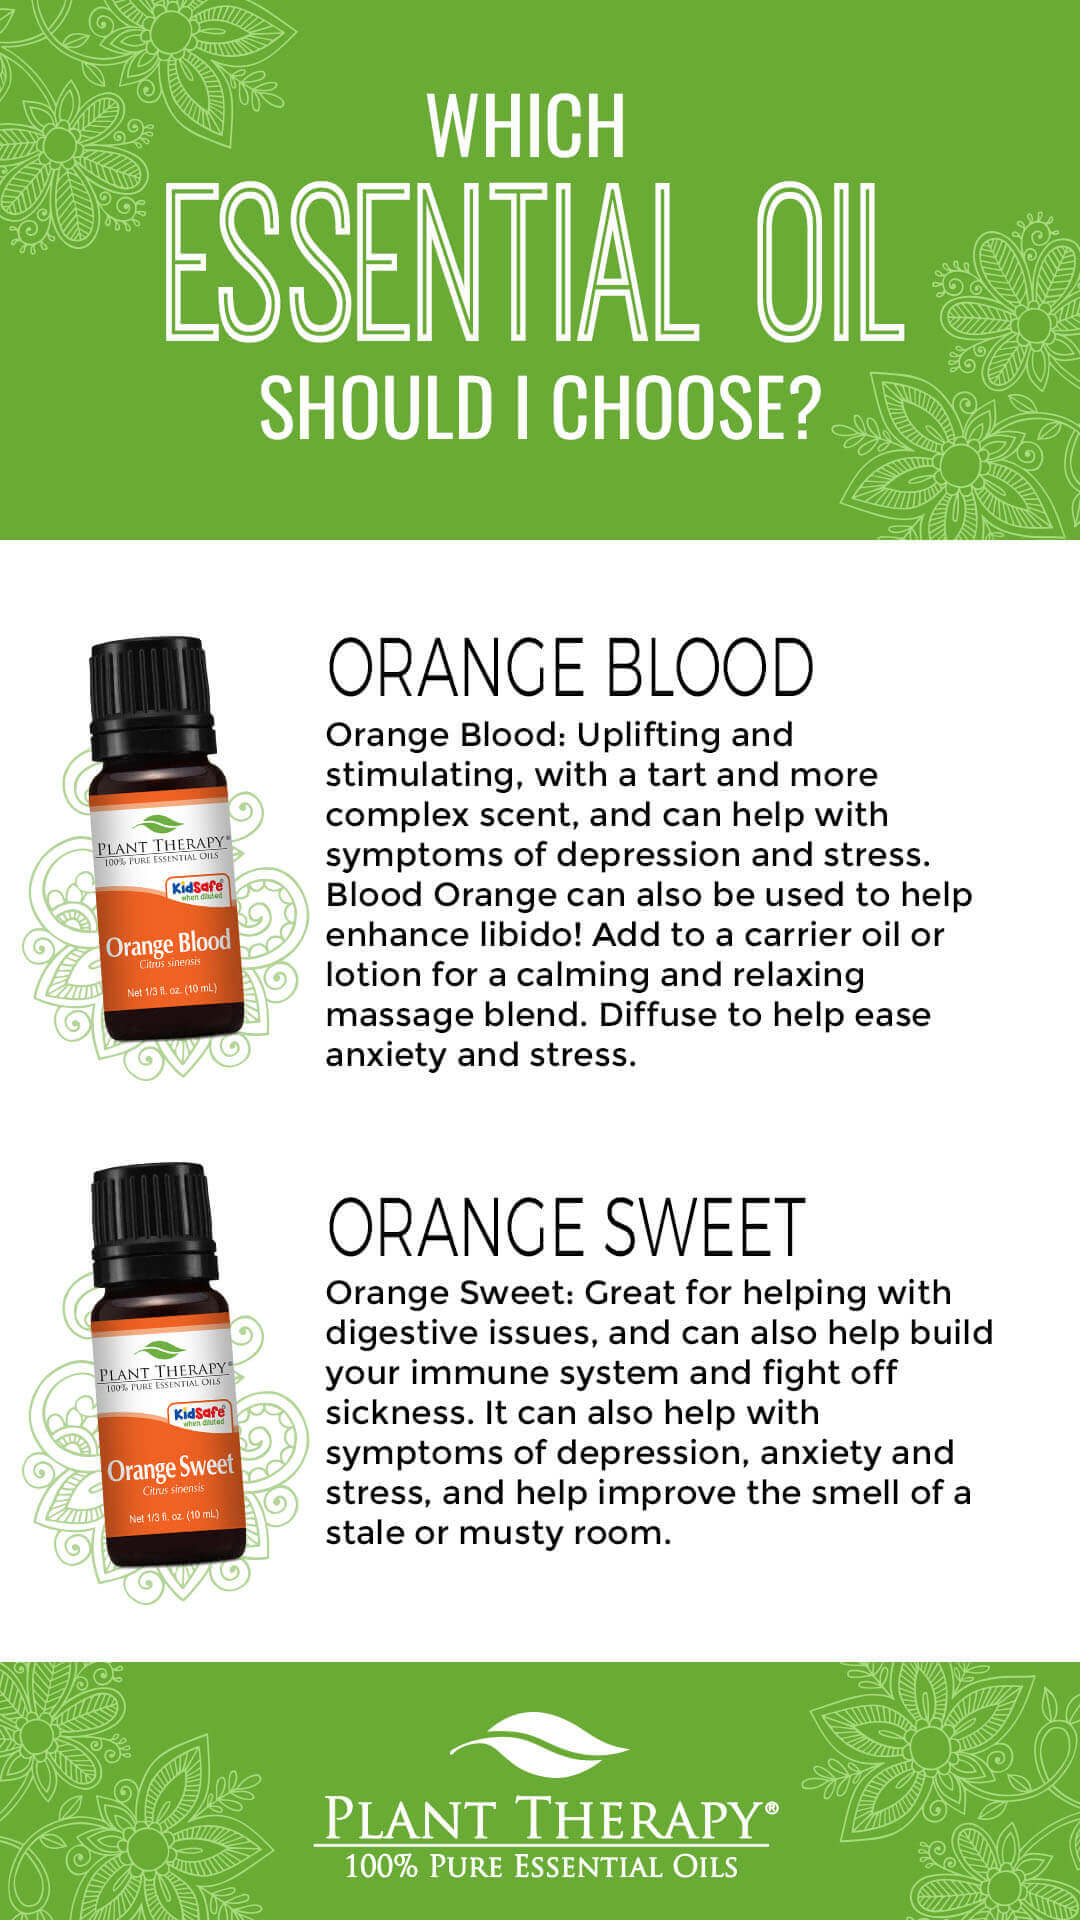 12 Essential Oils You Need for a Cozy Home This Holiday Season